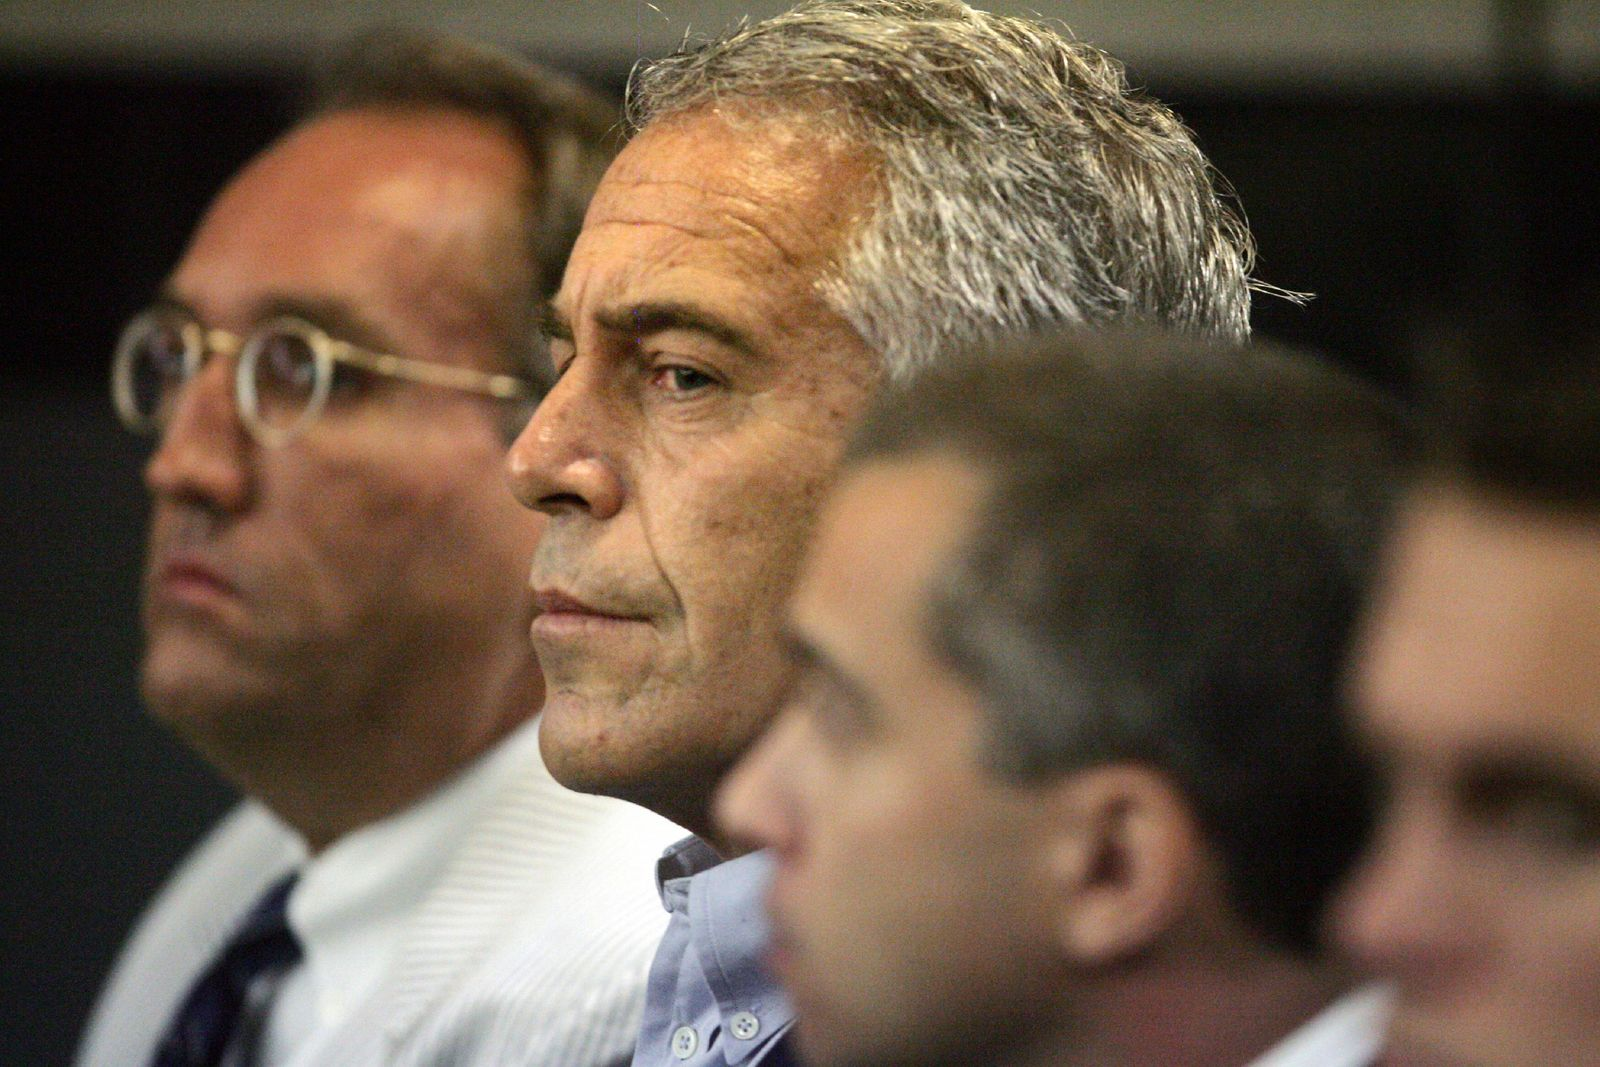 "FILE - In this July 30, 2008, file photo, Jeffrey Epstein, center, appears in court in West Palm Beach, Fla. Federal prosecutors, preparing for a bail fight Monday, July 15, 2019, say evidence against Epstein is growing ""stronger by the day"" after several more women contacted them in recent days to say he abused them when they were underage. (Uma Sanghvi/Palm Beach Post via AP, File)"